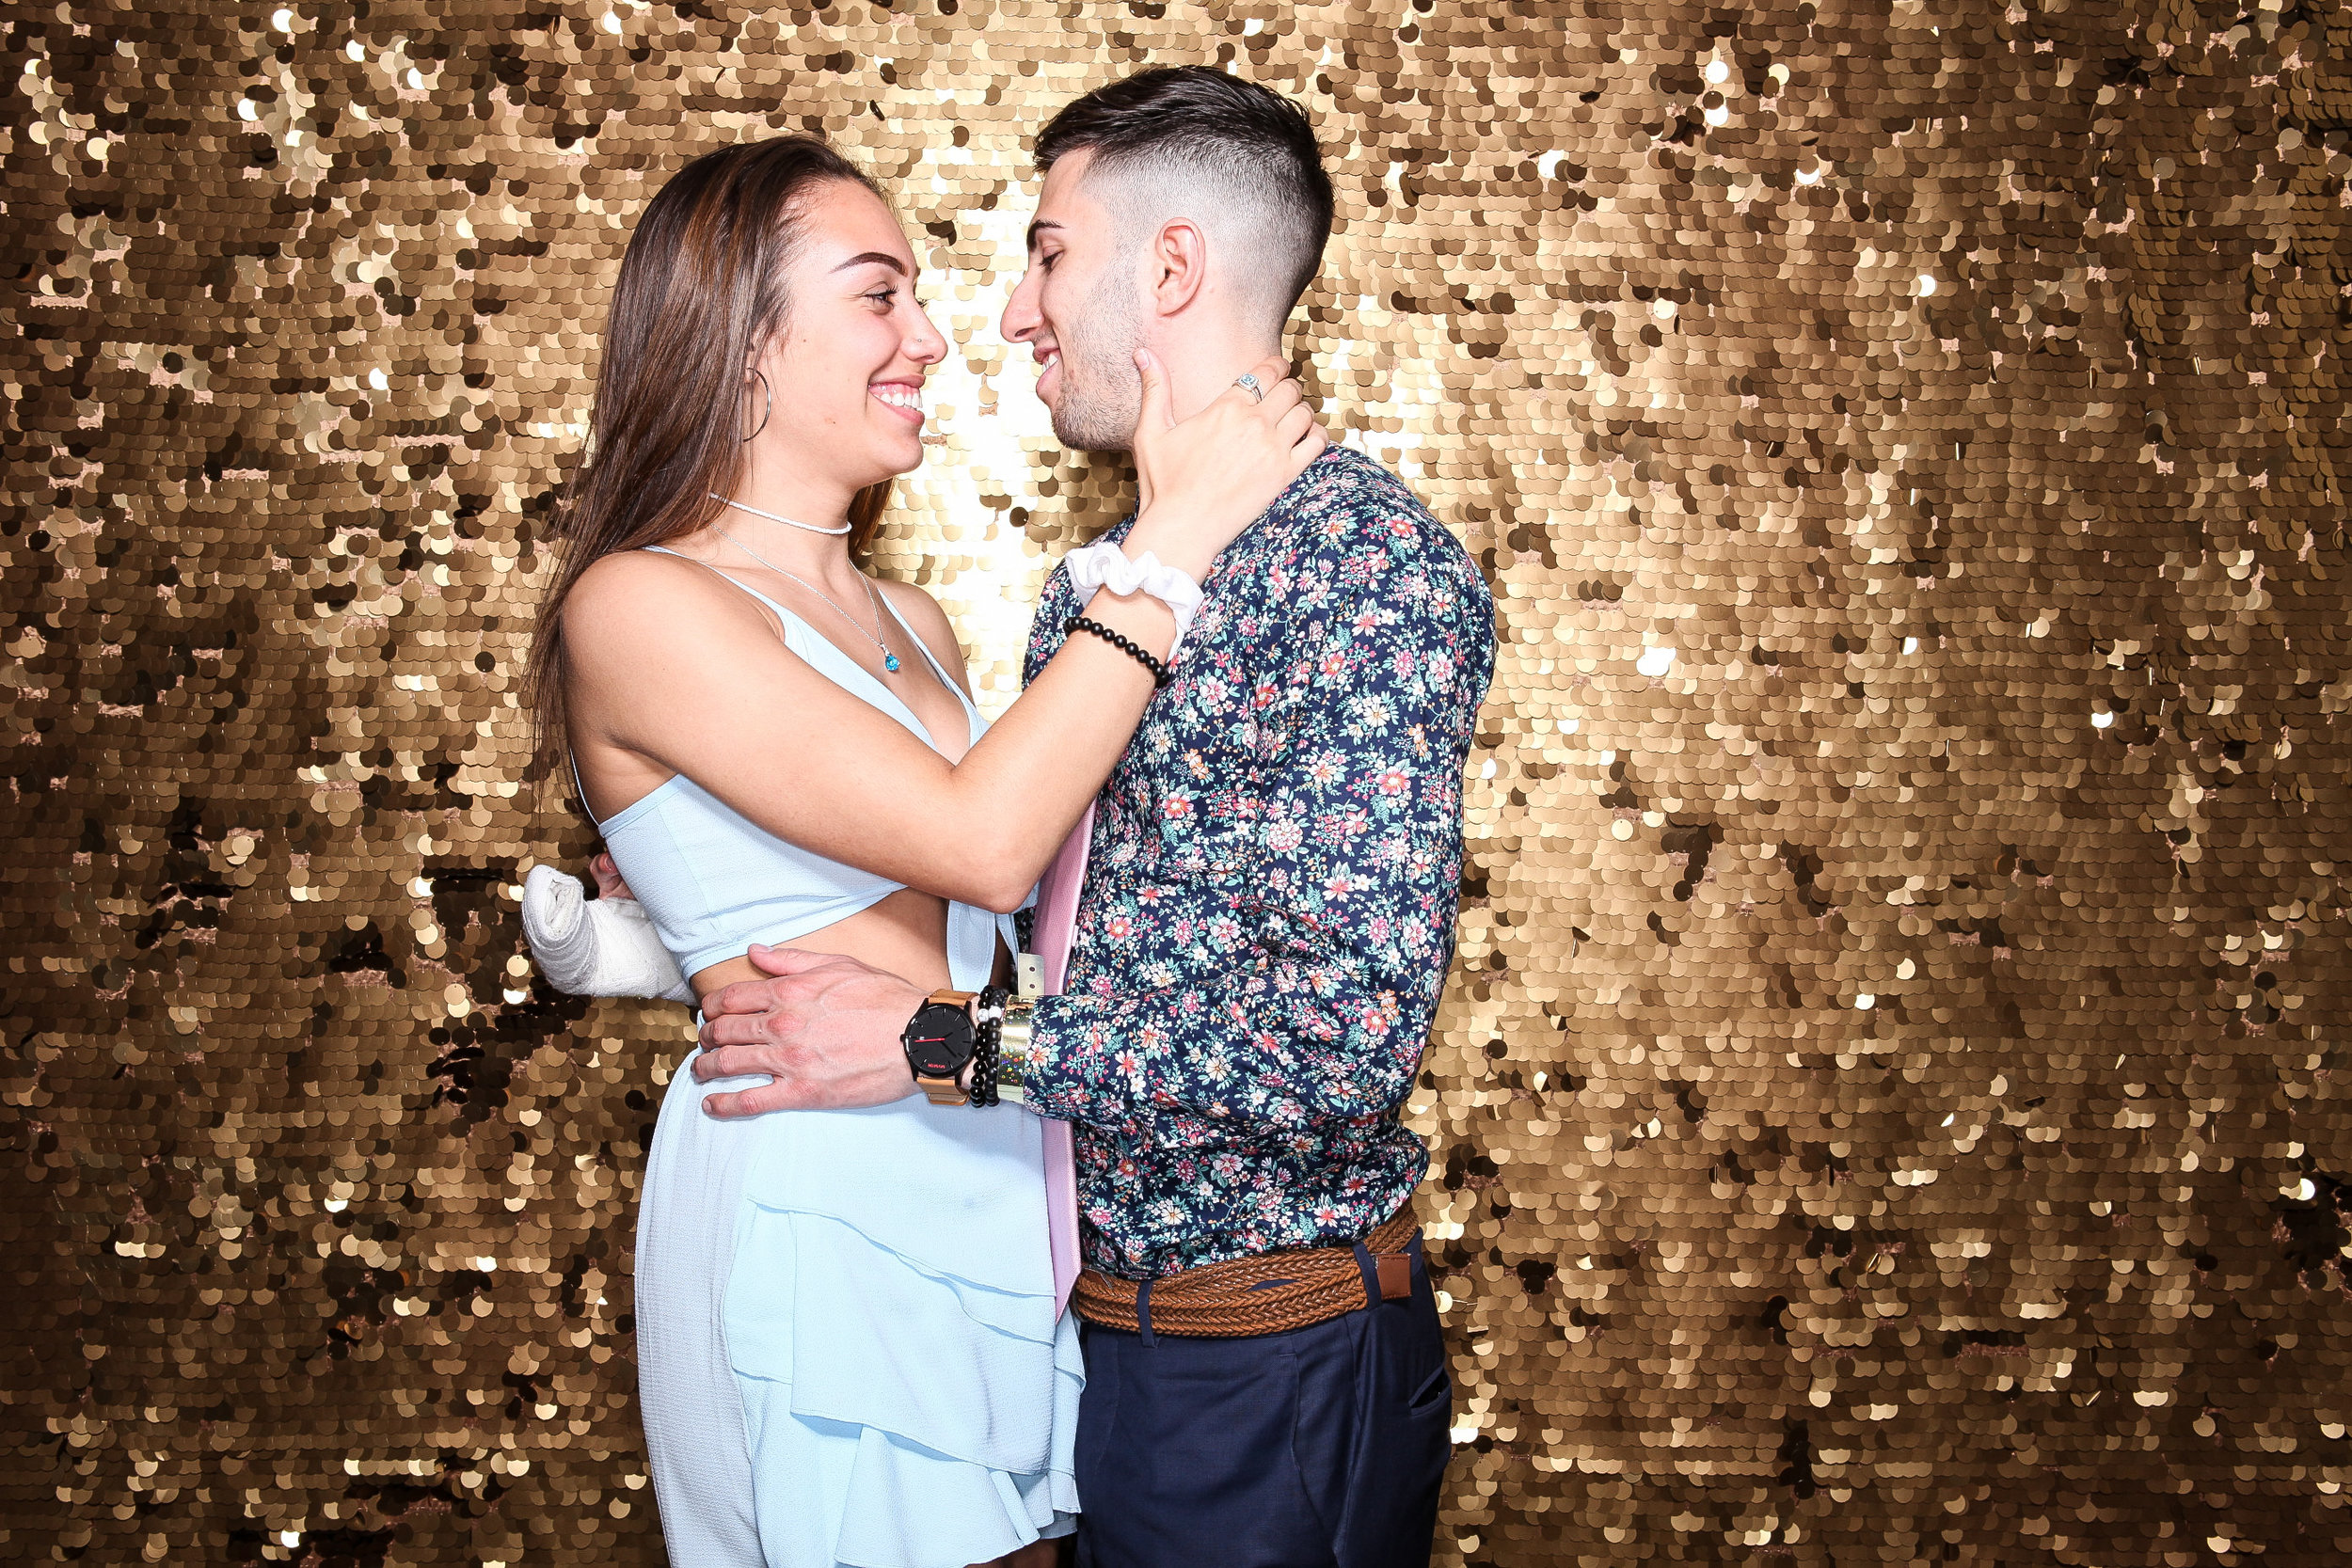 20190503_Adelphi_Senior_Formal-068.jpg